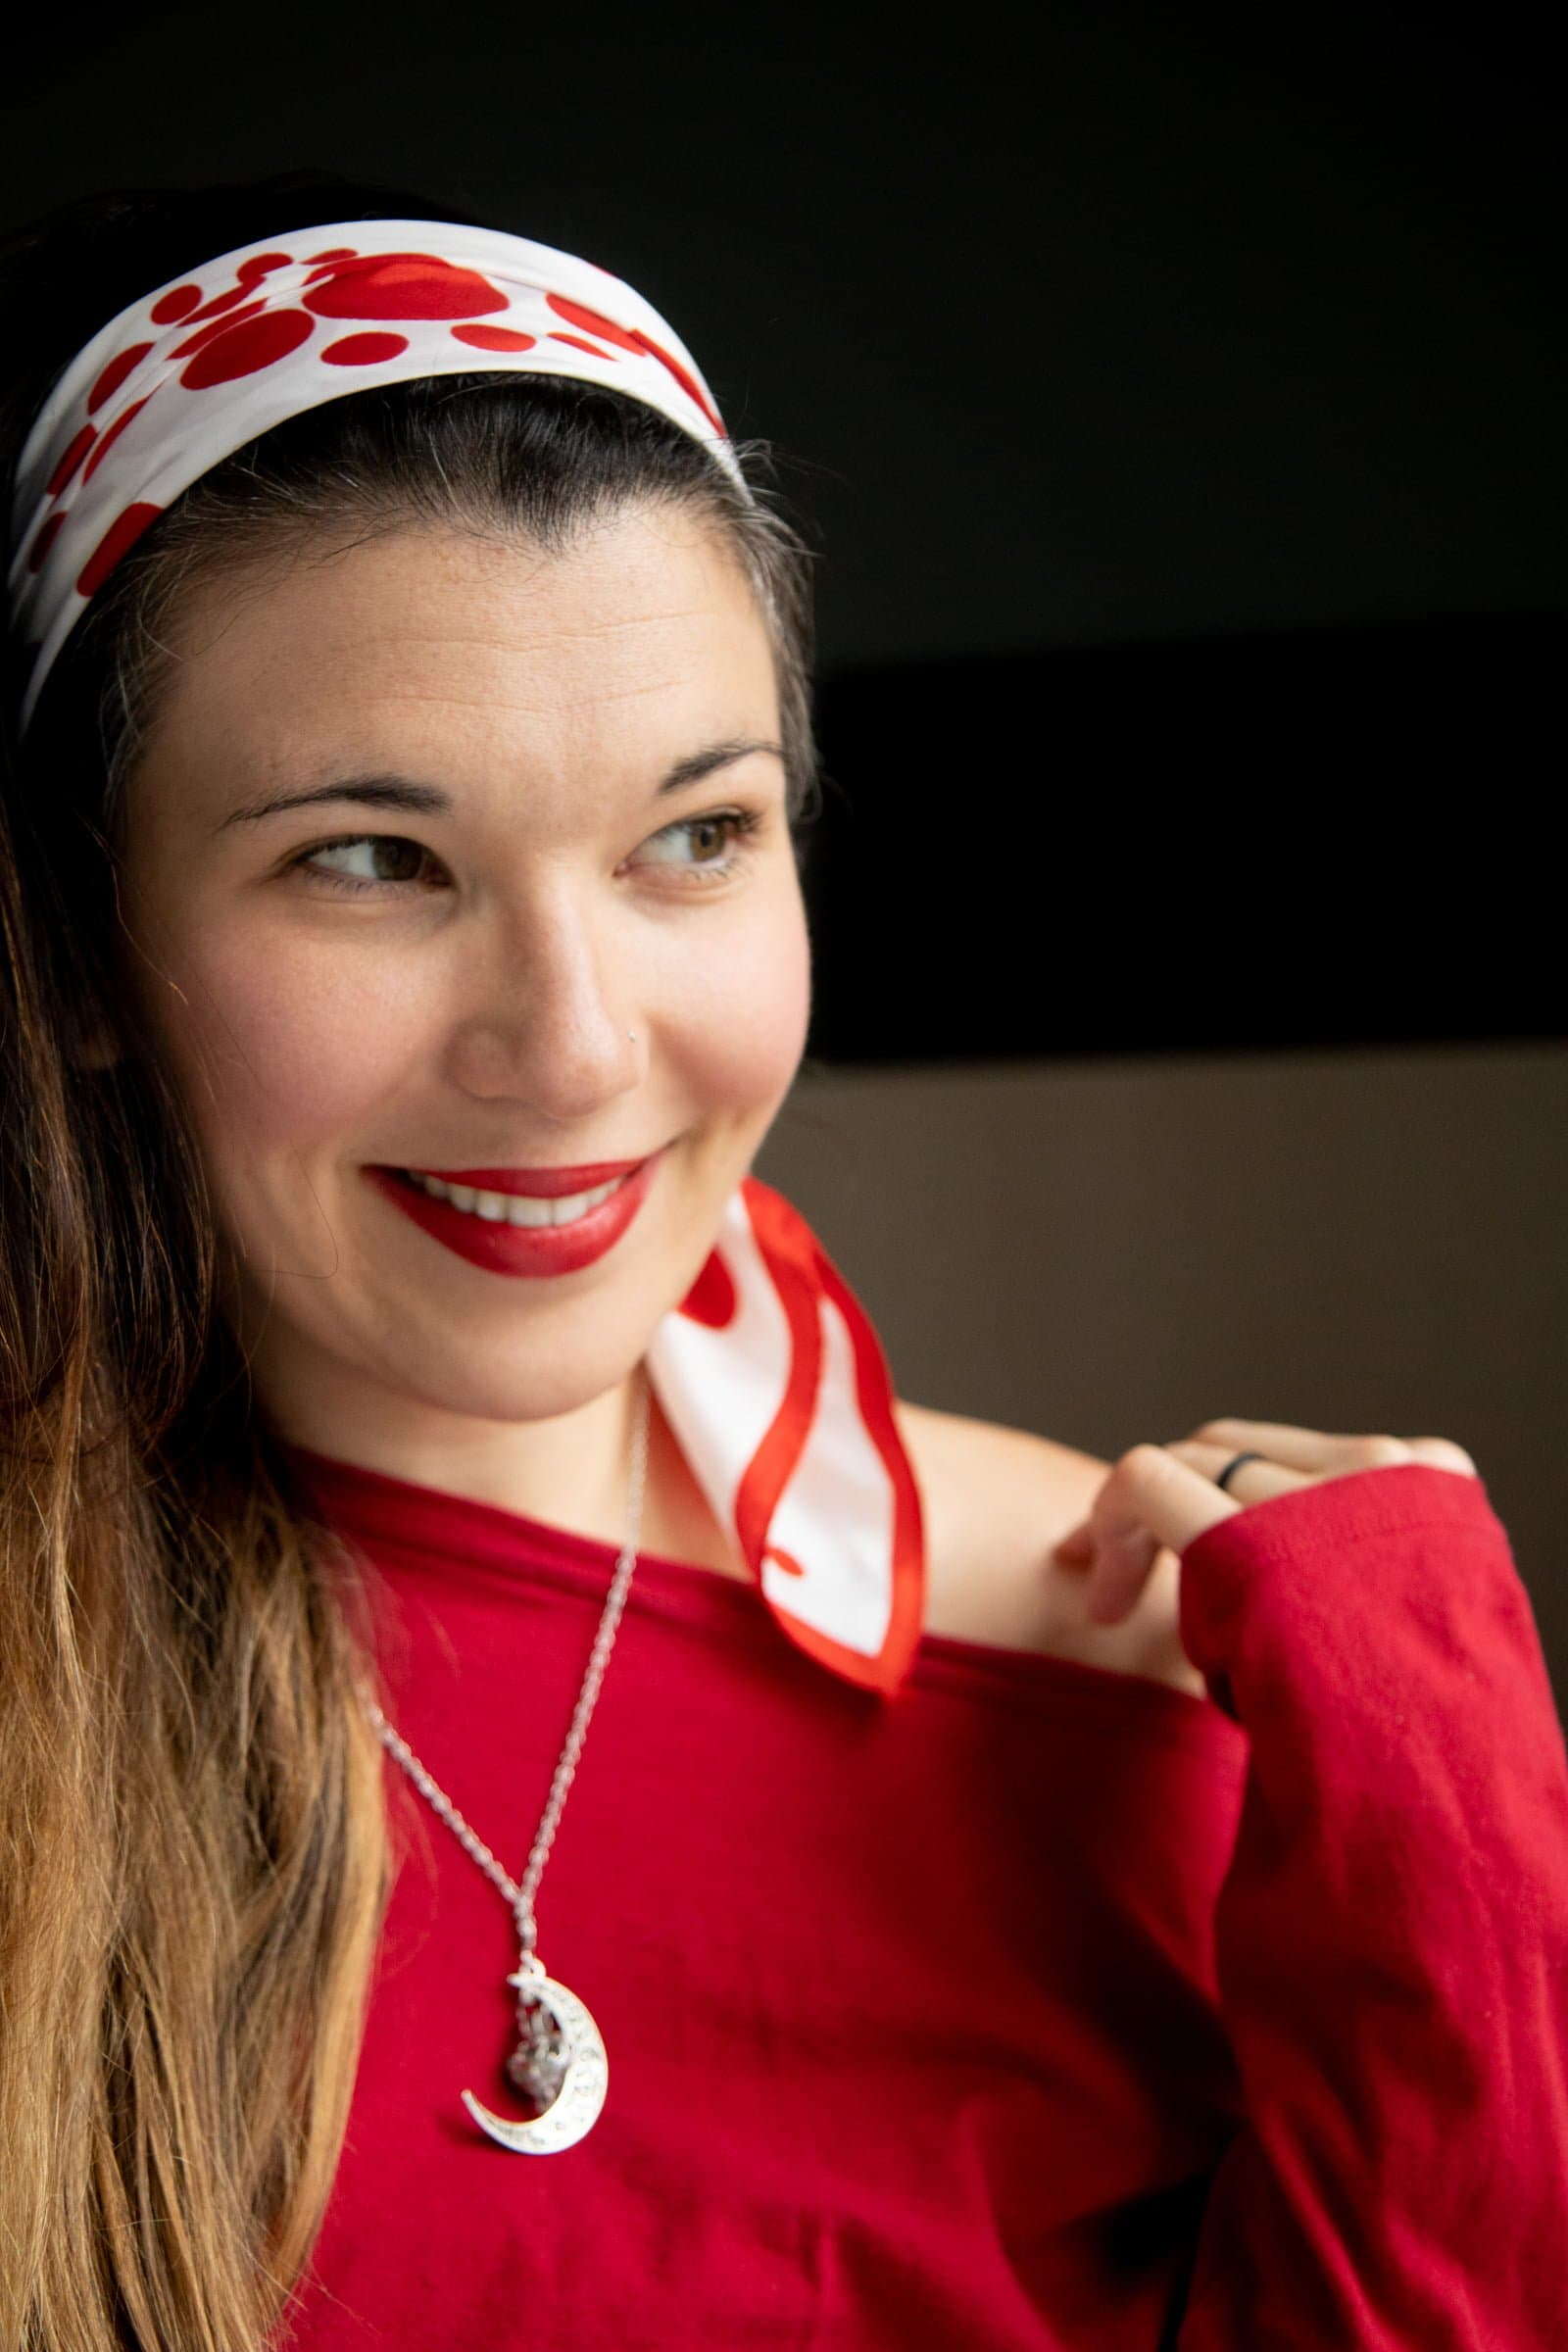 Brunette woman in a red sweater and moonstone necklace, with a red and white scarf wrapped around her hair